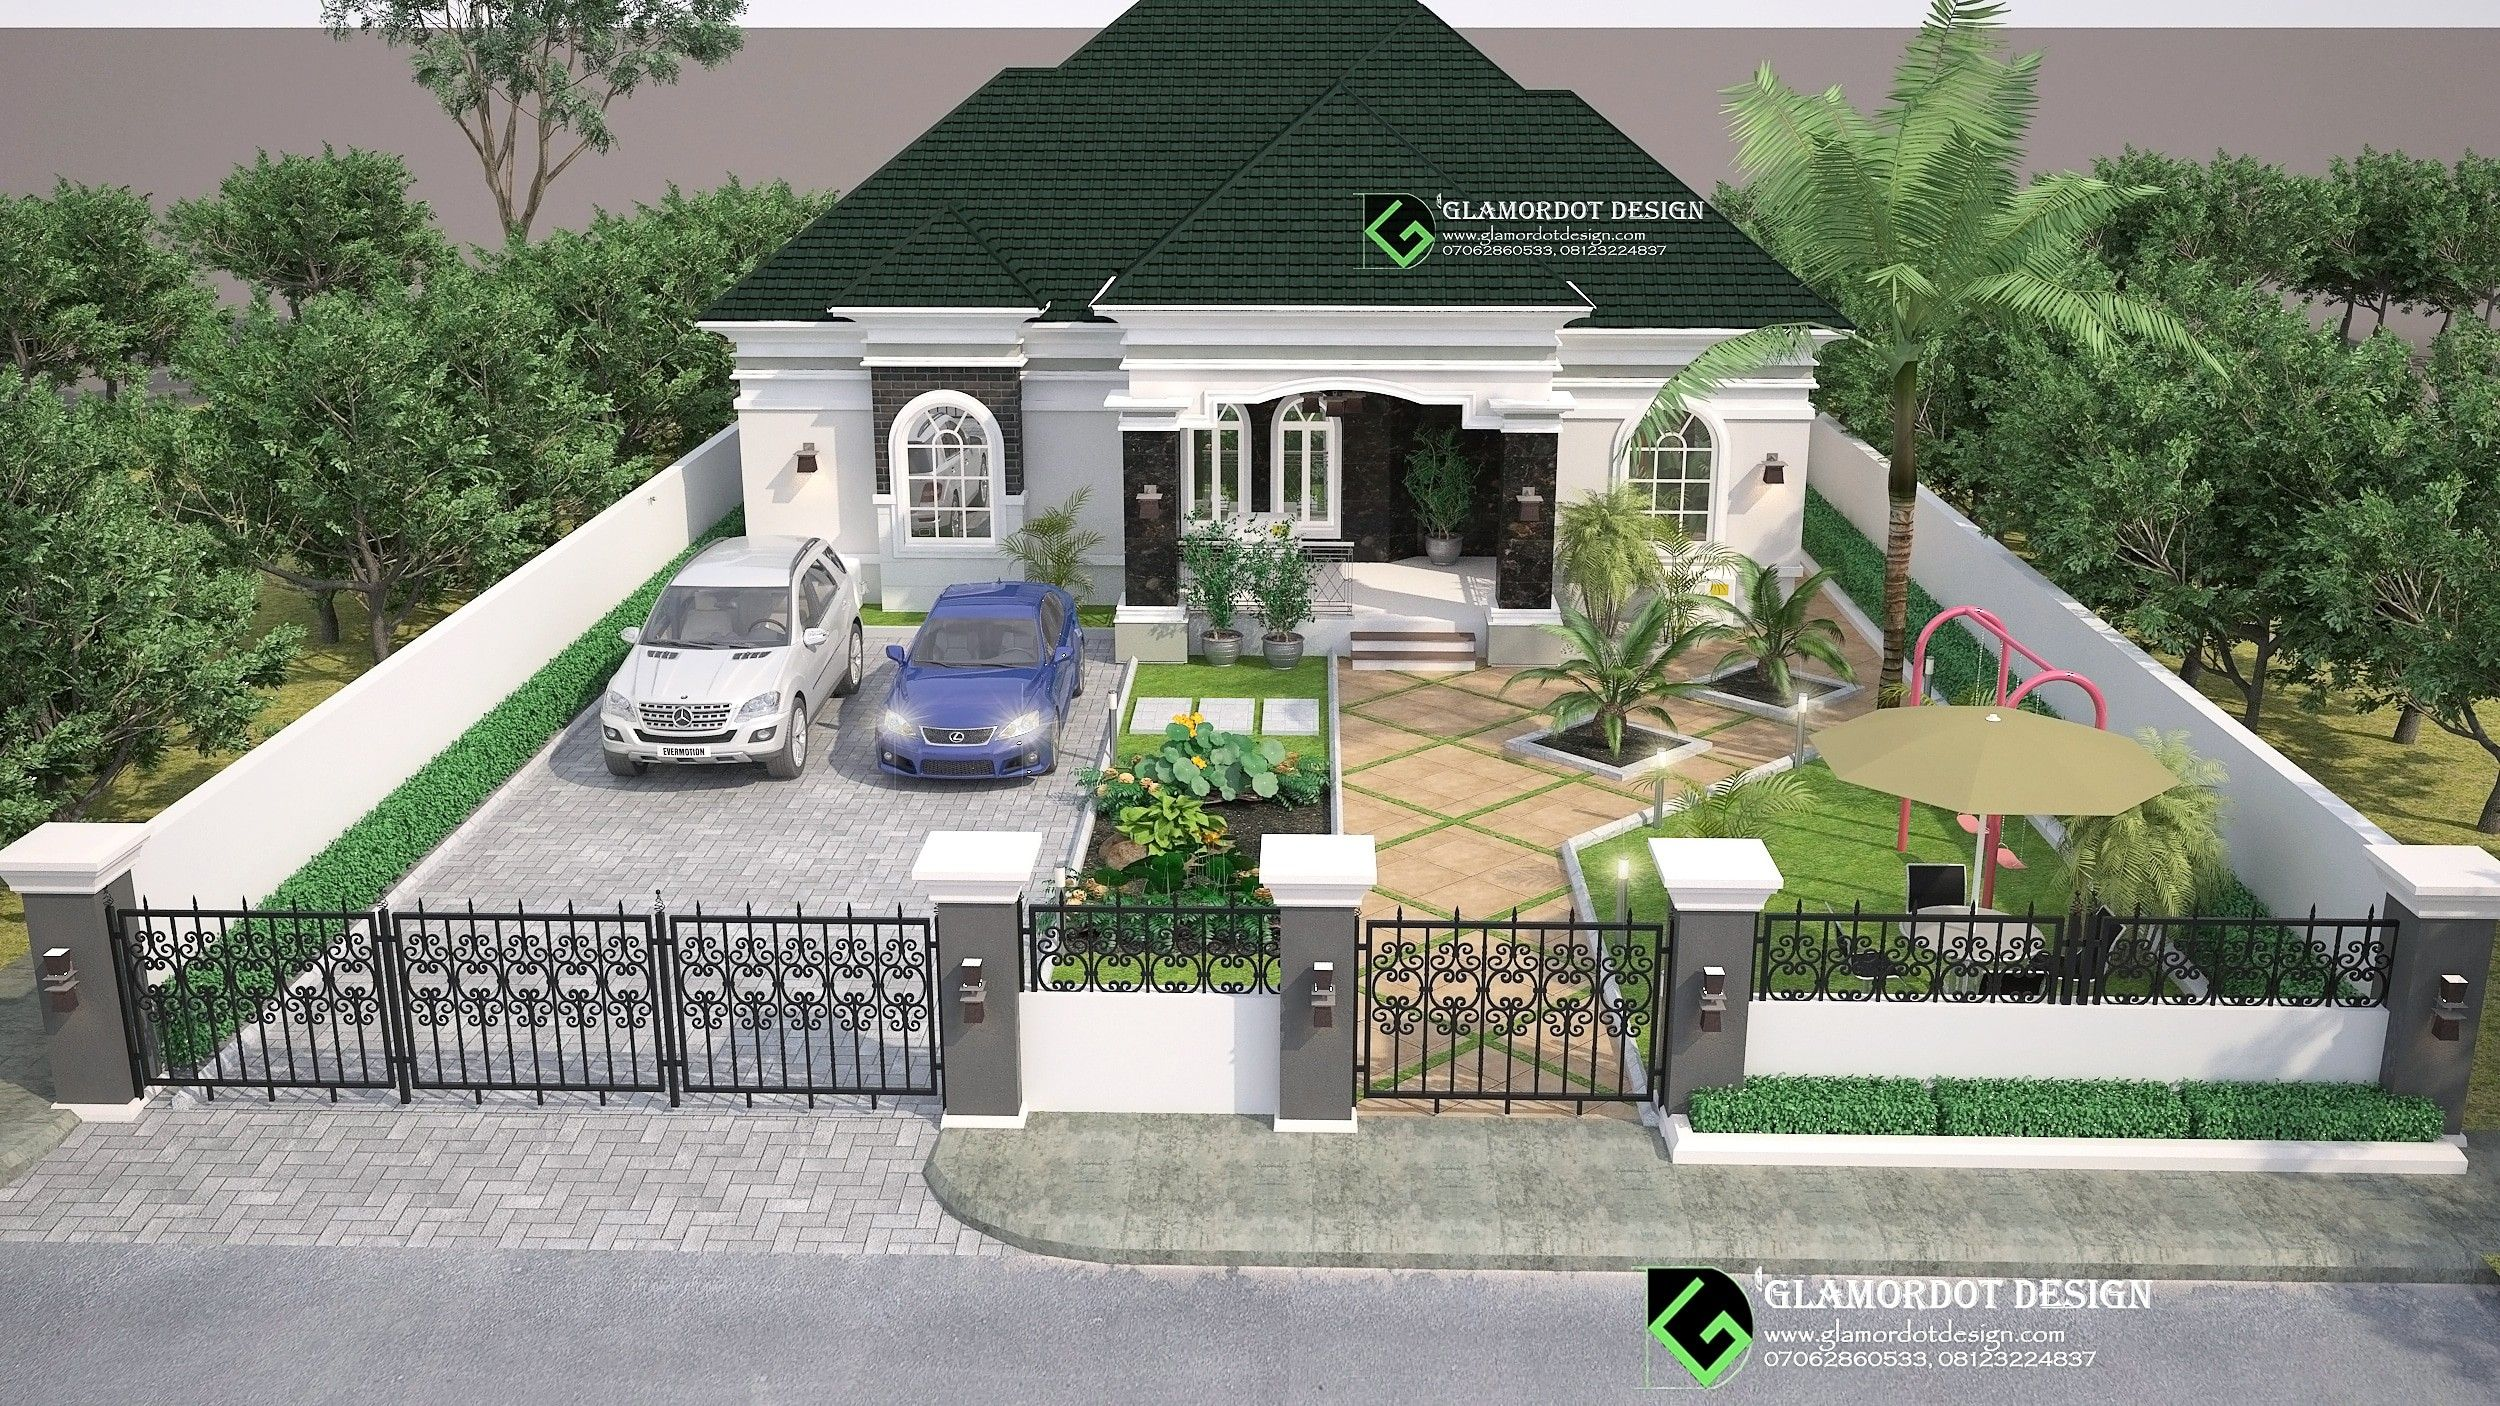 3 bedroom Bungalow house plan, Port Harcourt Nigeria. For ...